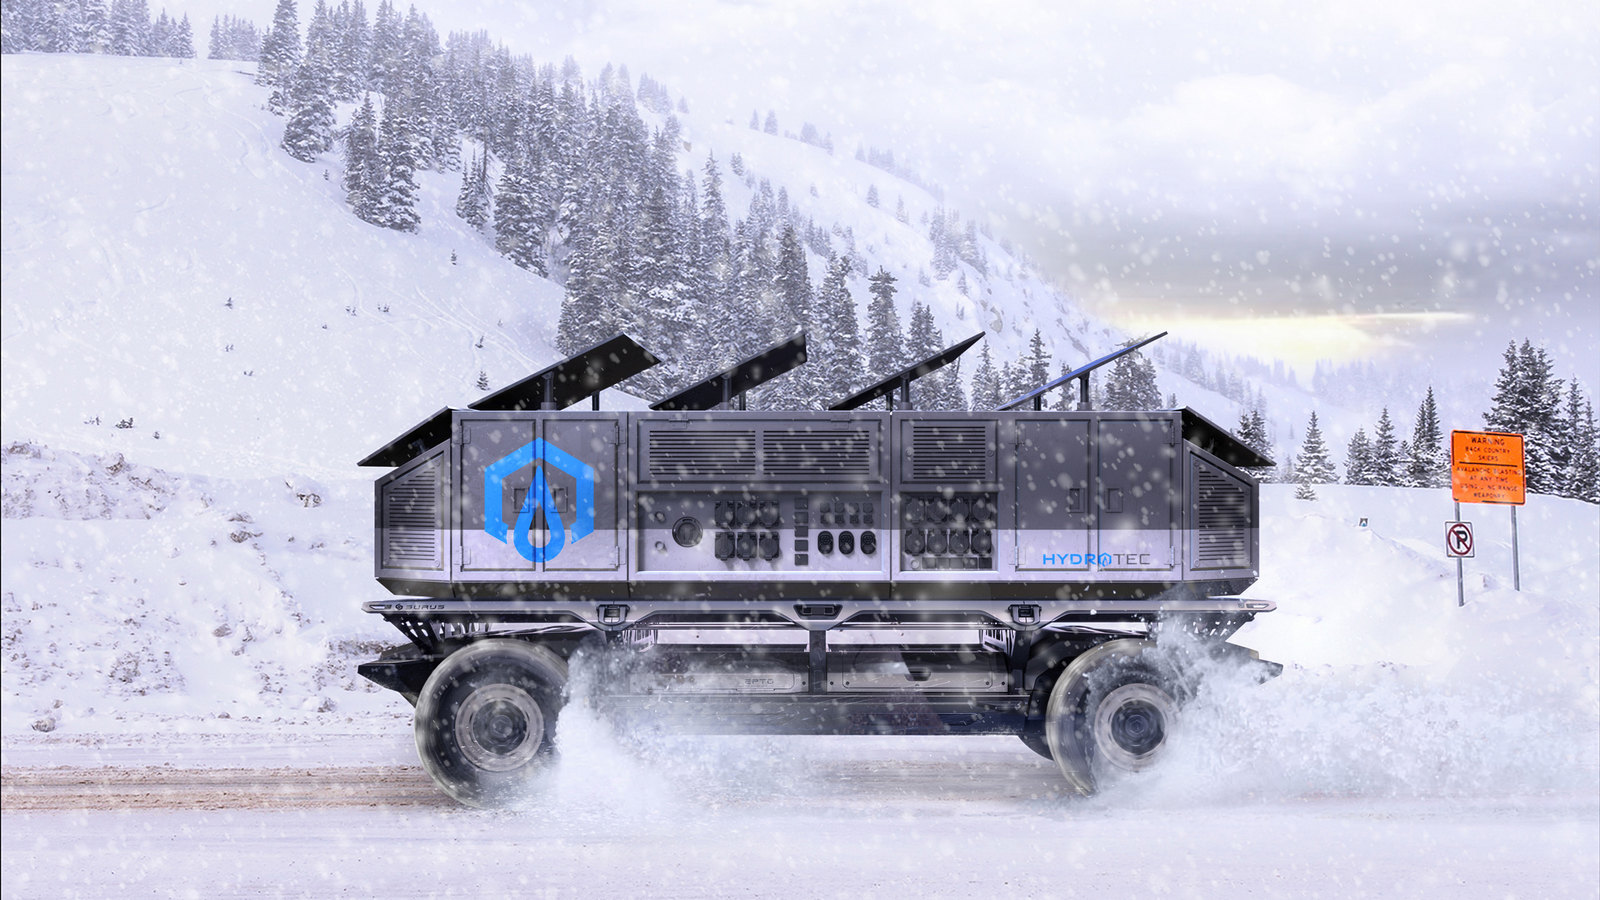 A rendering of the Silent Utility Rover Universal Superstructure (SURUS) platform with solar panels and power generators to show the potential of flexible fuel cell solutions. SURUS was designed to form a foundation for a family of commercial vehicle solutions that leverages a single propulsion system integrated into a common chassis.